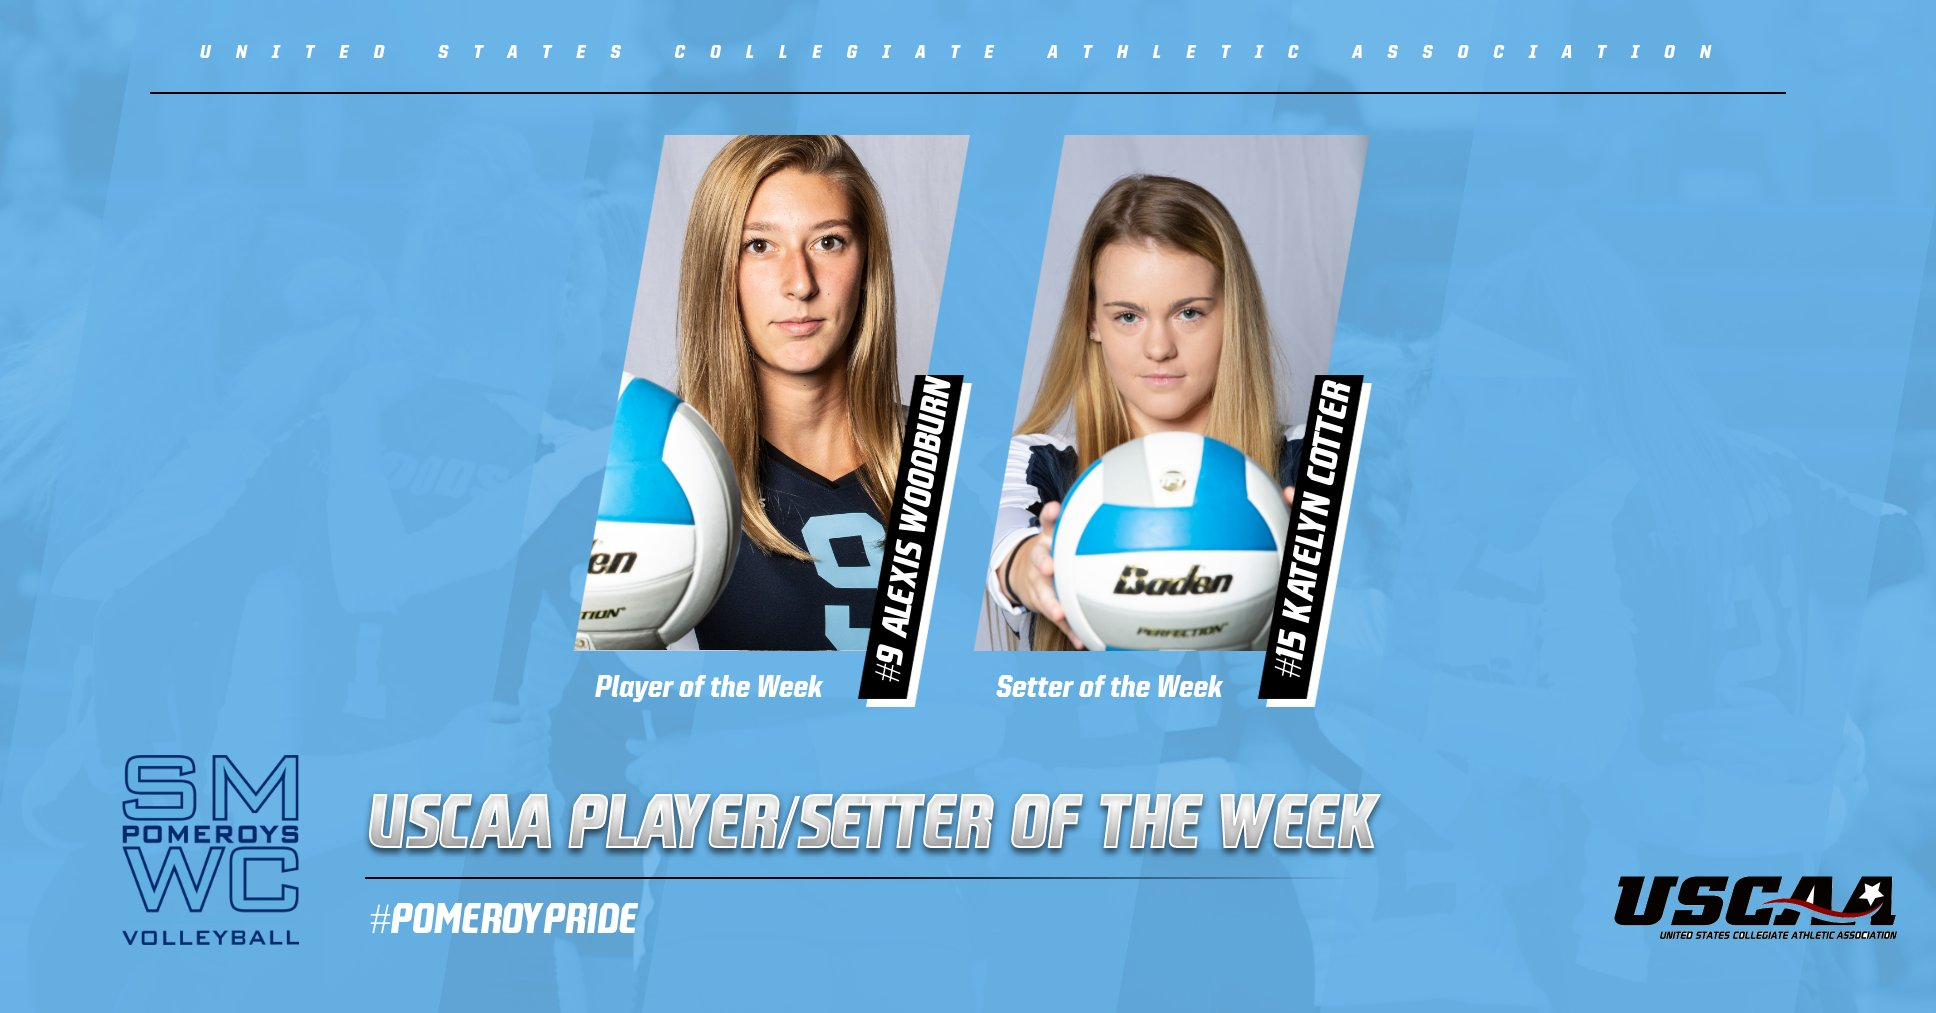 Cotter and Woodburn Earn USCAA Volleyball Division I Setter/Player of the Week